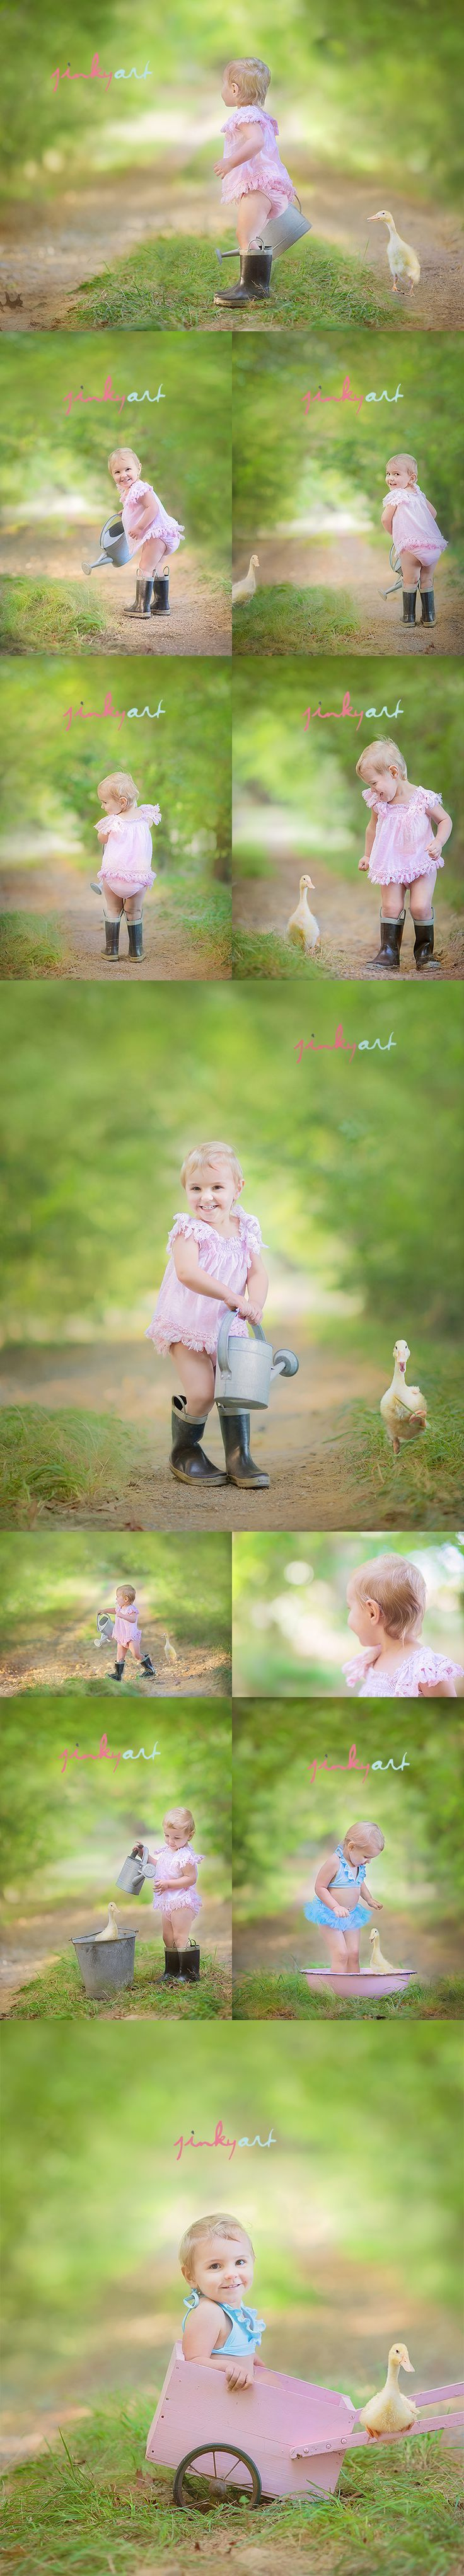 LOVE this...we sooo need to do Easter Shots with maybe a duck or bunny :)